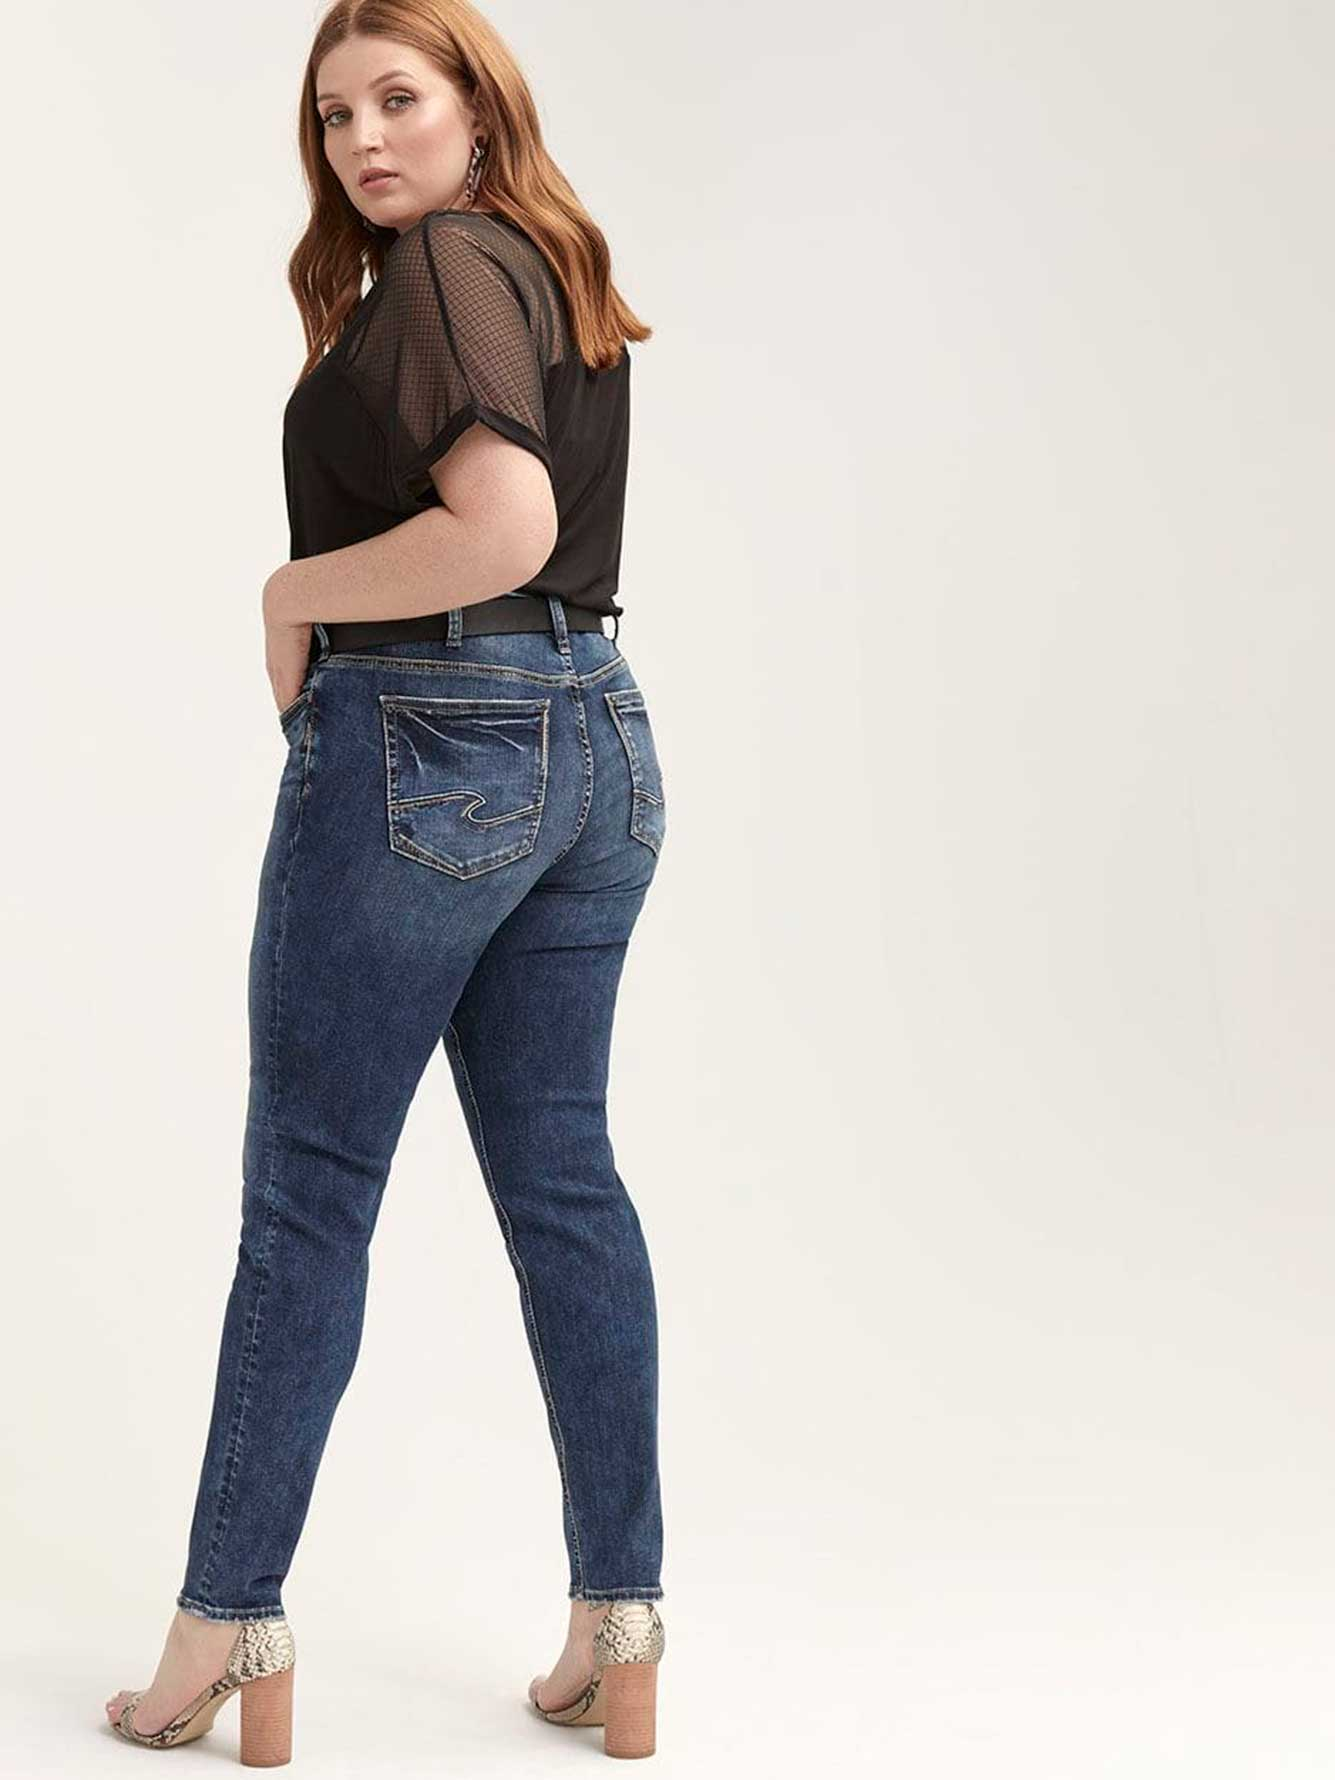 Elyse Skinny Jeans - Silver Jeans